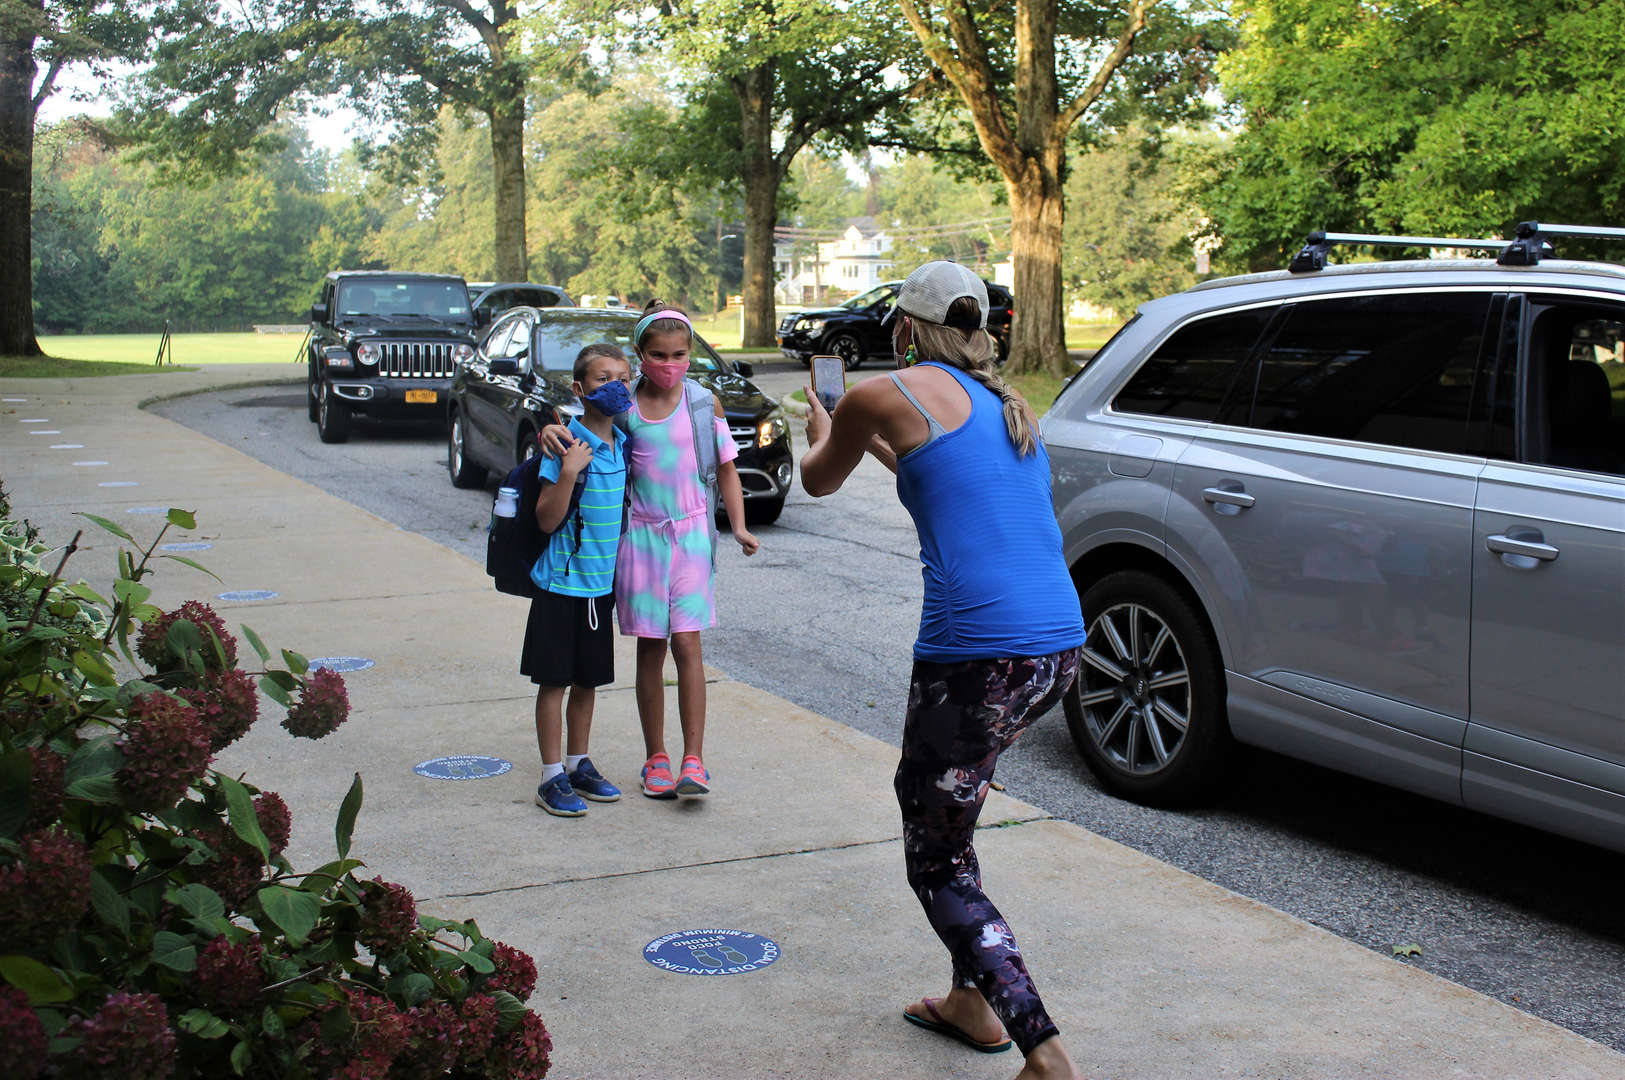 A mother takes a photo of her son and daughter on the first day of school.